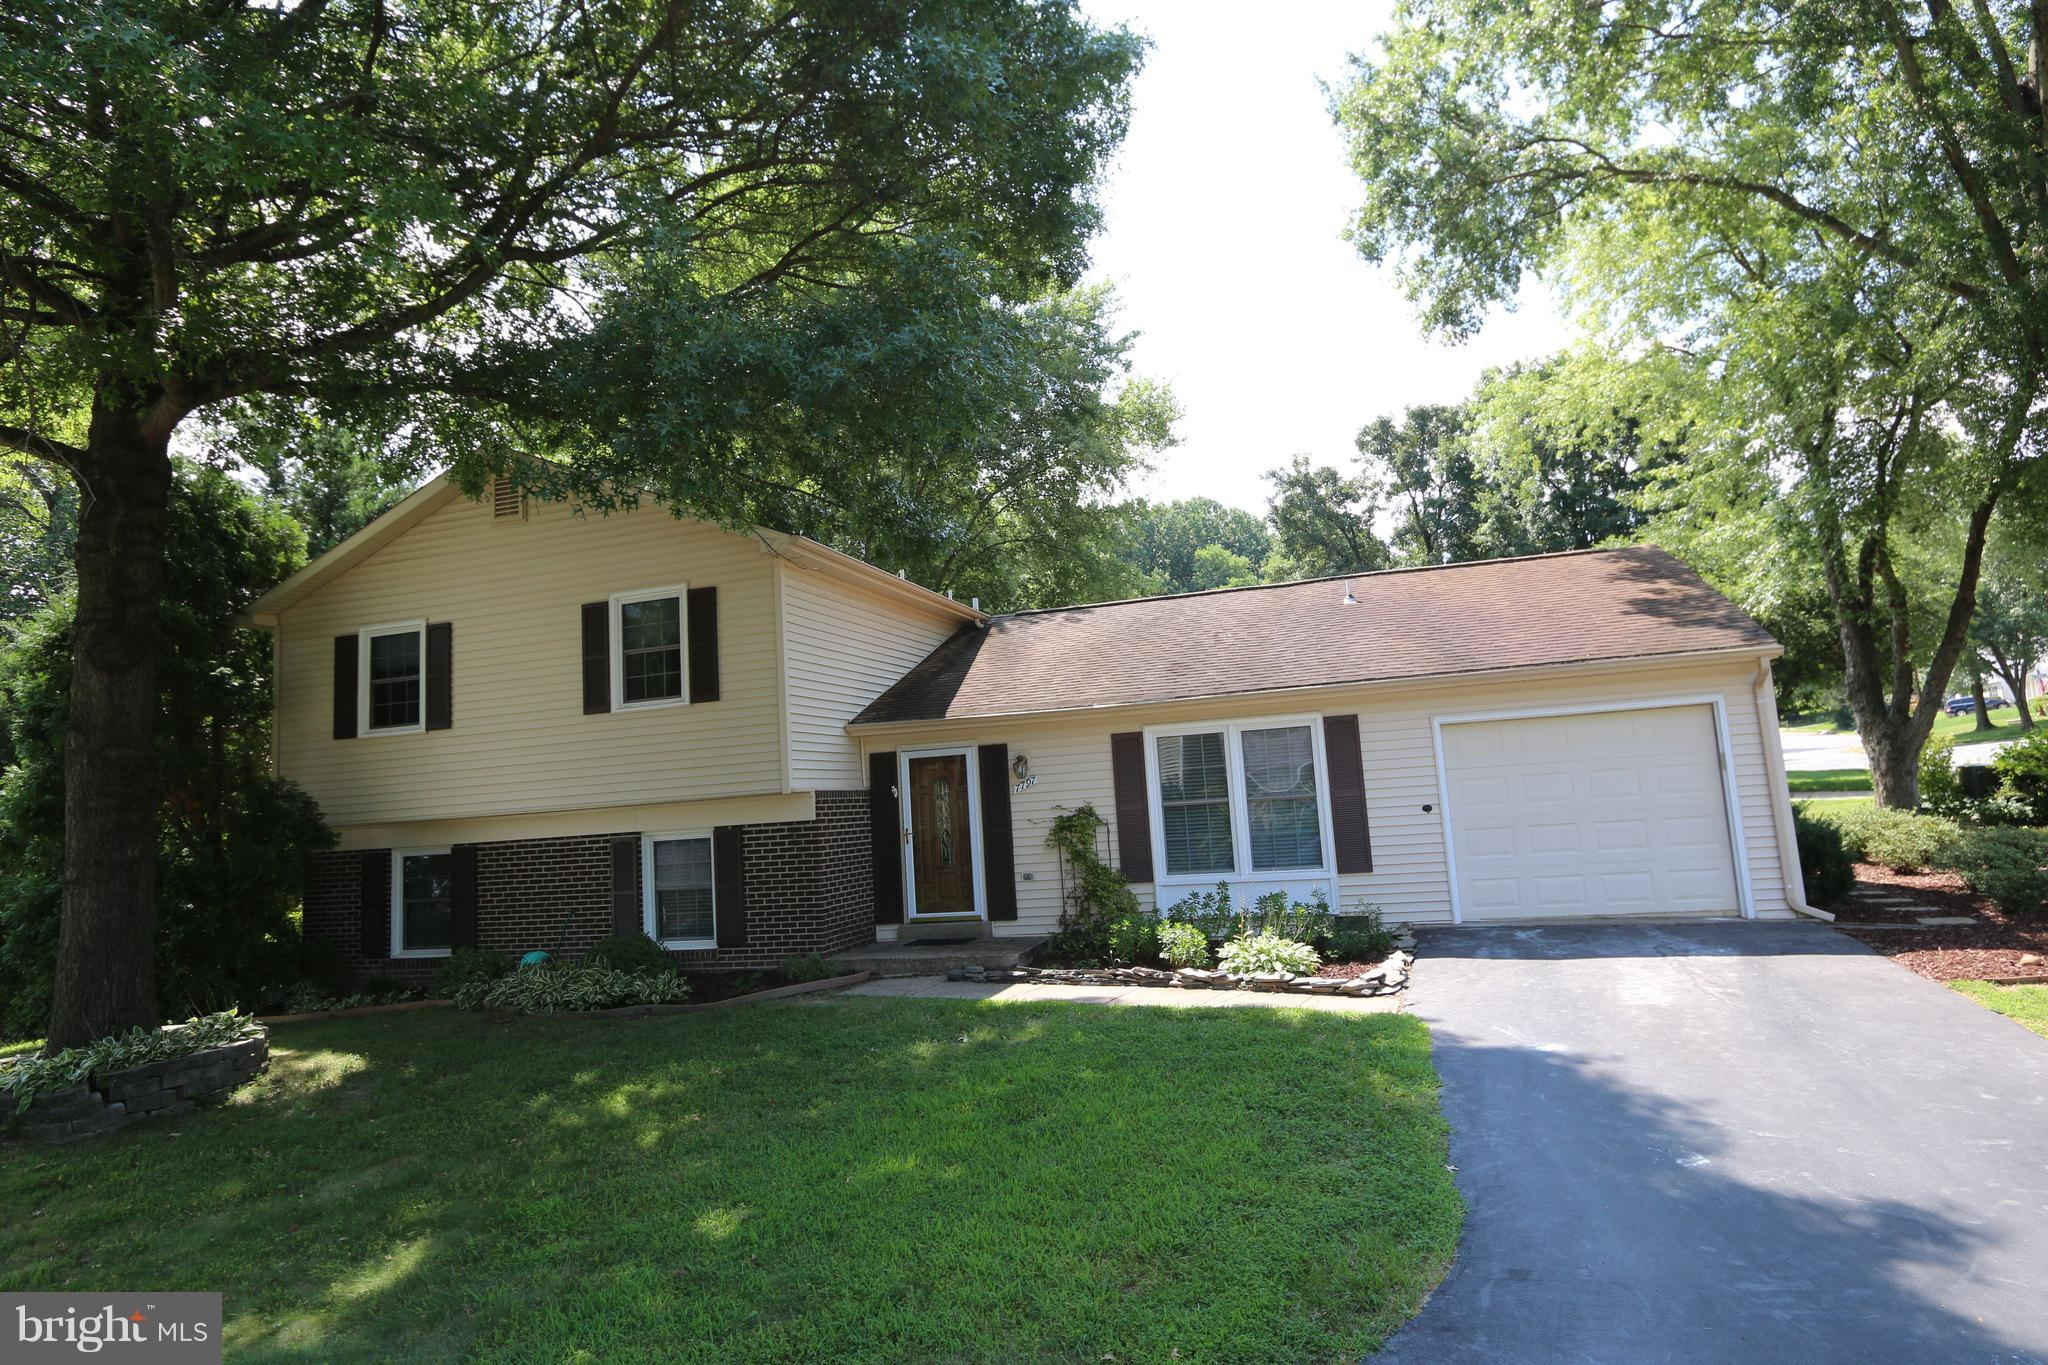 Stunning 4BR, 3FB, 3LVL SFH Located in Newington Woods Close to Springfield Metro! Lots of Updates to This Home ~ HVAC '15, HWH '14, Recessed Lighting In Living & Dining Rooms '18 & Master Bedroom, Lower Level 3rd FB '14, Gutters '14 & so Much More! Gourmet Kitchen w/Granite Counters & Updated Appliances. Beautiful Hardwoods on Main Level & MBR! Perfect Backyard for Entertaining w/Decking & Pond!